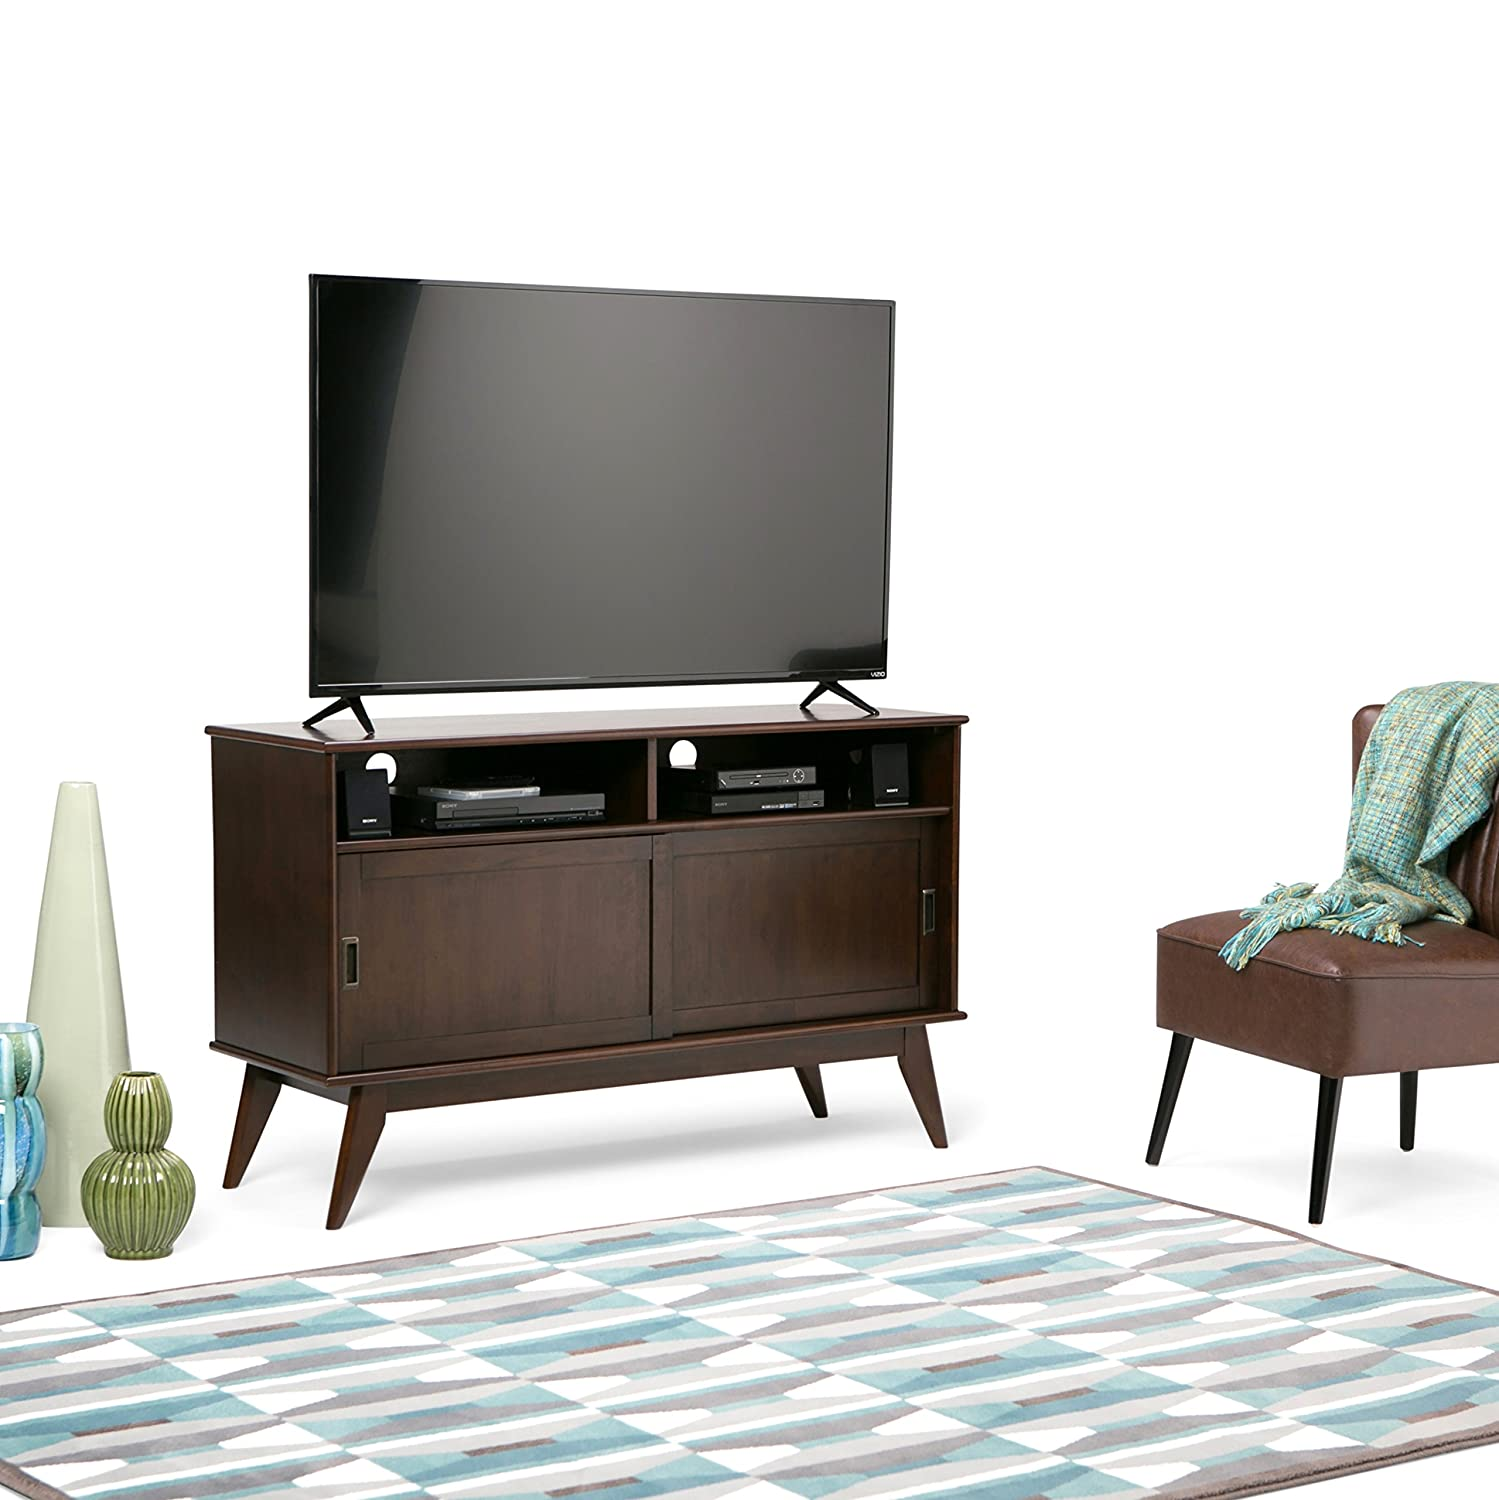 Simpli Home 3AXCDRP-09 Draper Solid Hardwood 54 inch wide Mid Century Modern TV media Stand in Medium Auburn Brown For TVs up to 60 inches